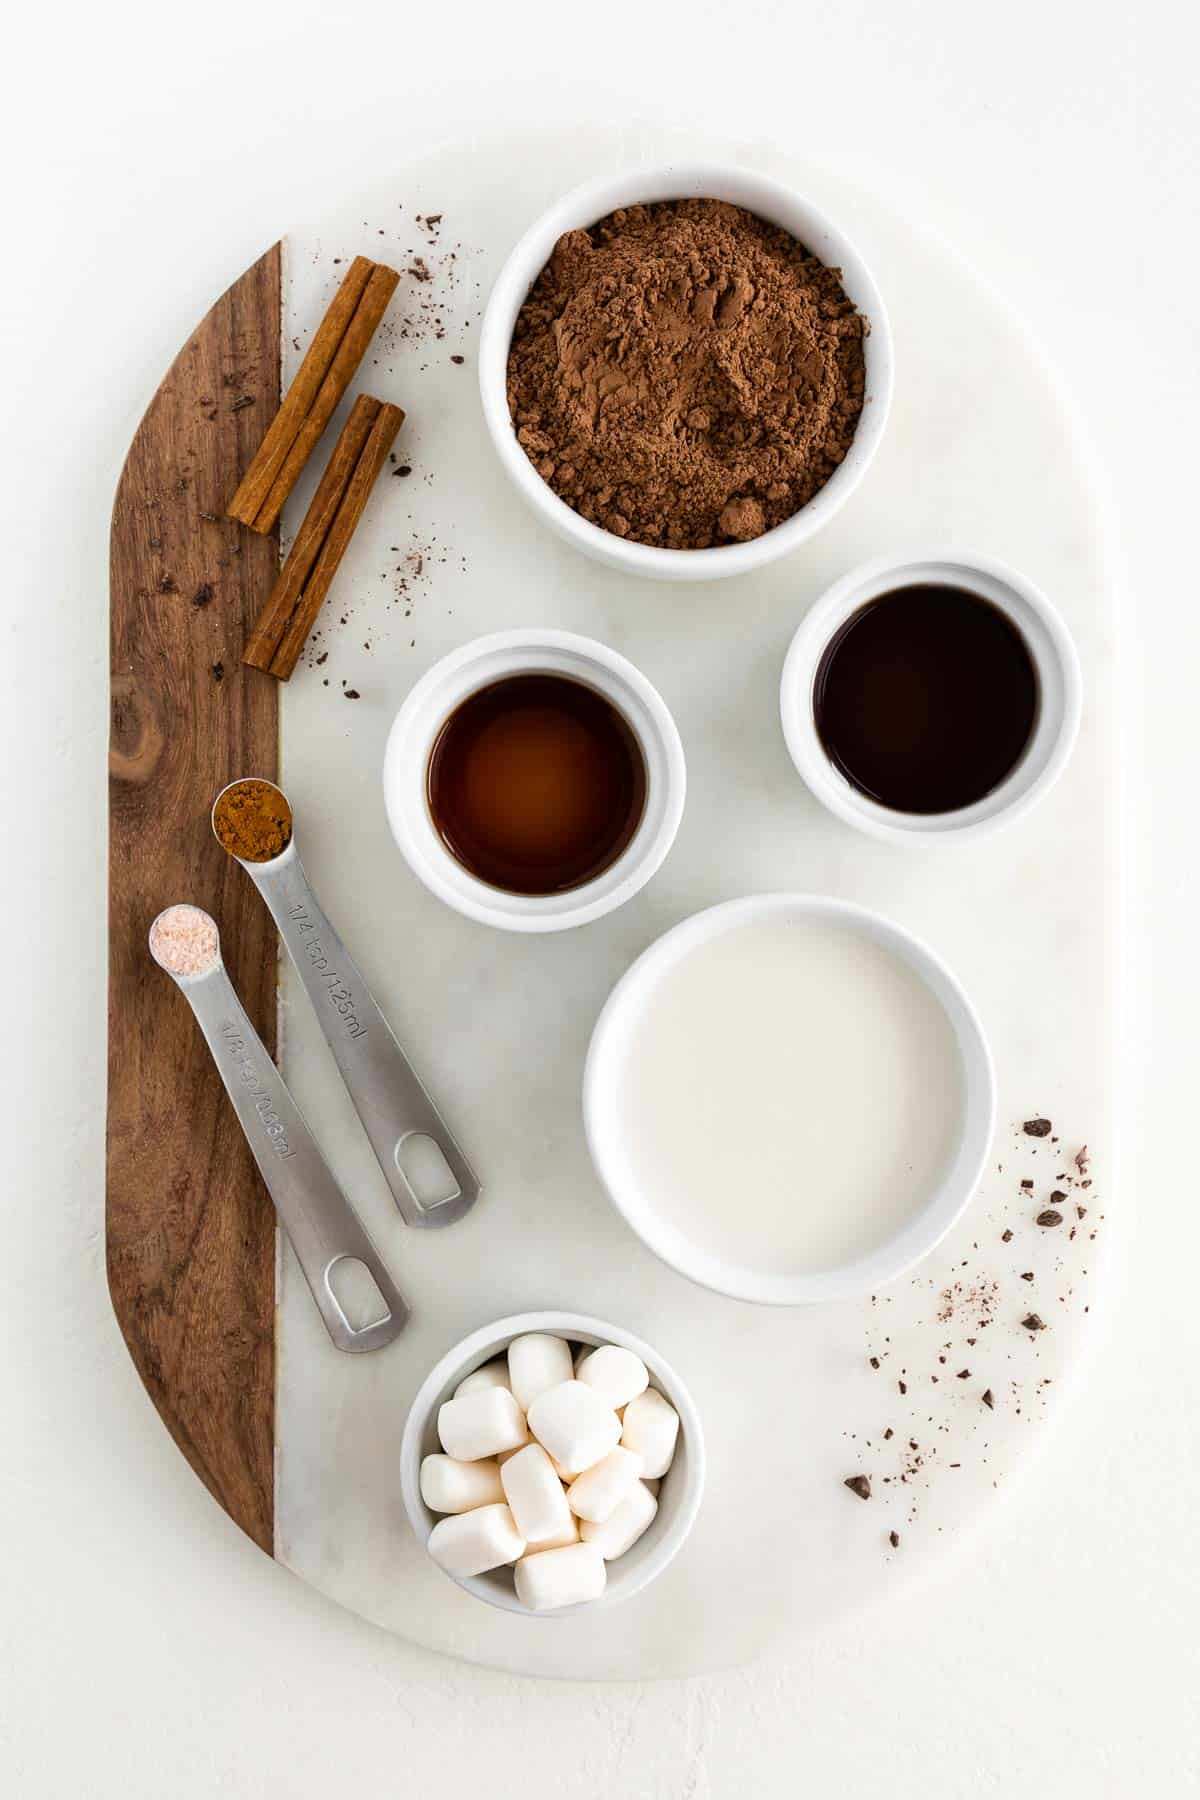 a marble board topped with bowls of cocoa powder, oat milk, vanilla extract, maple syrup, marshmallows, and cinnamon sticks